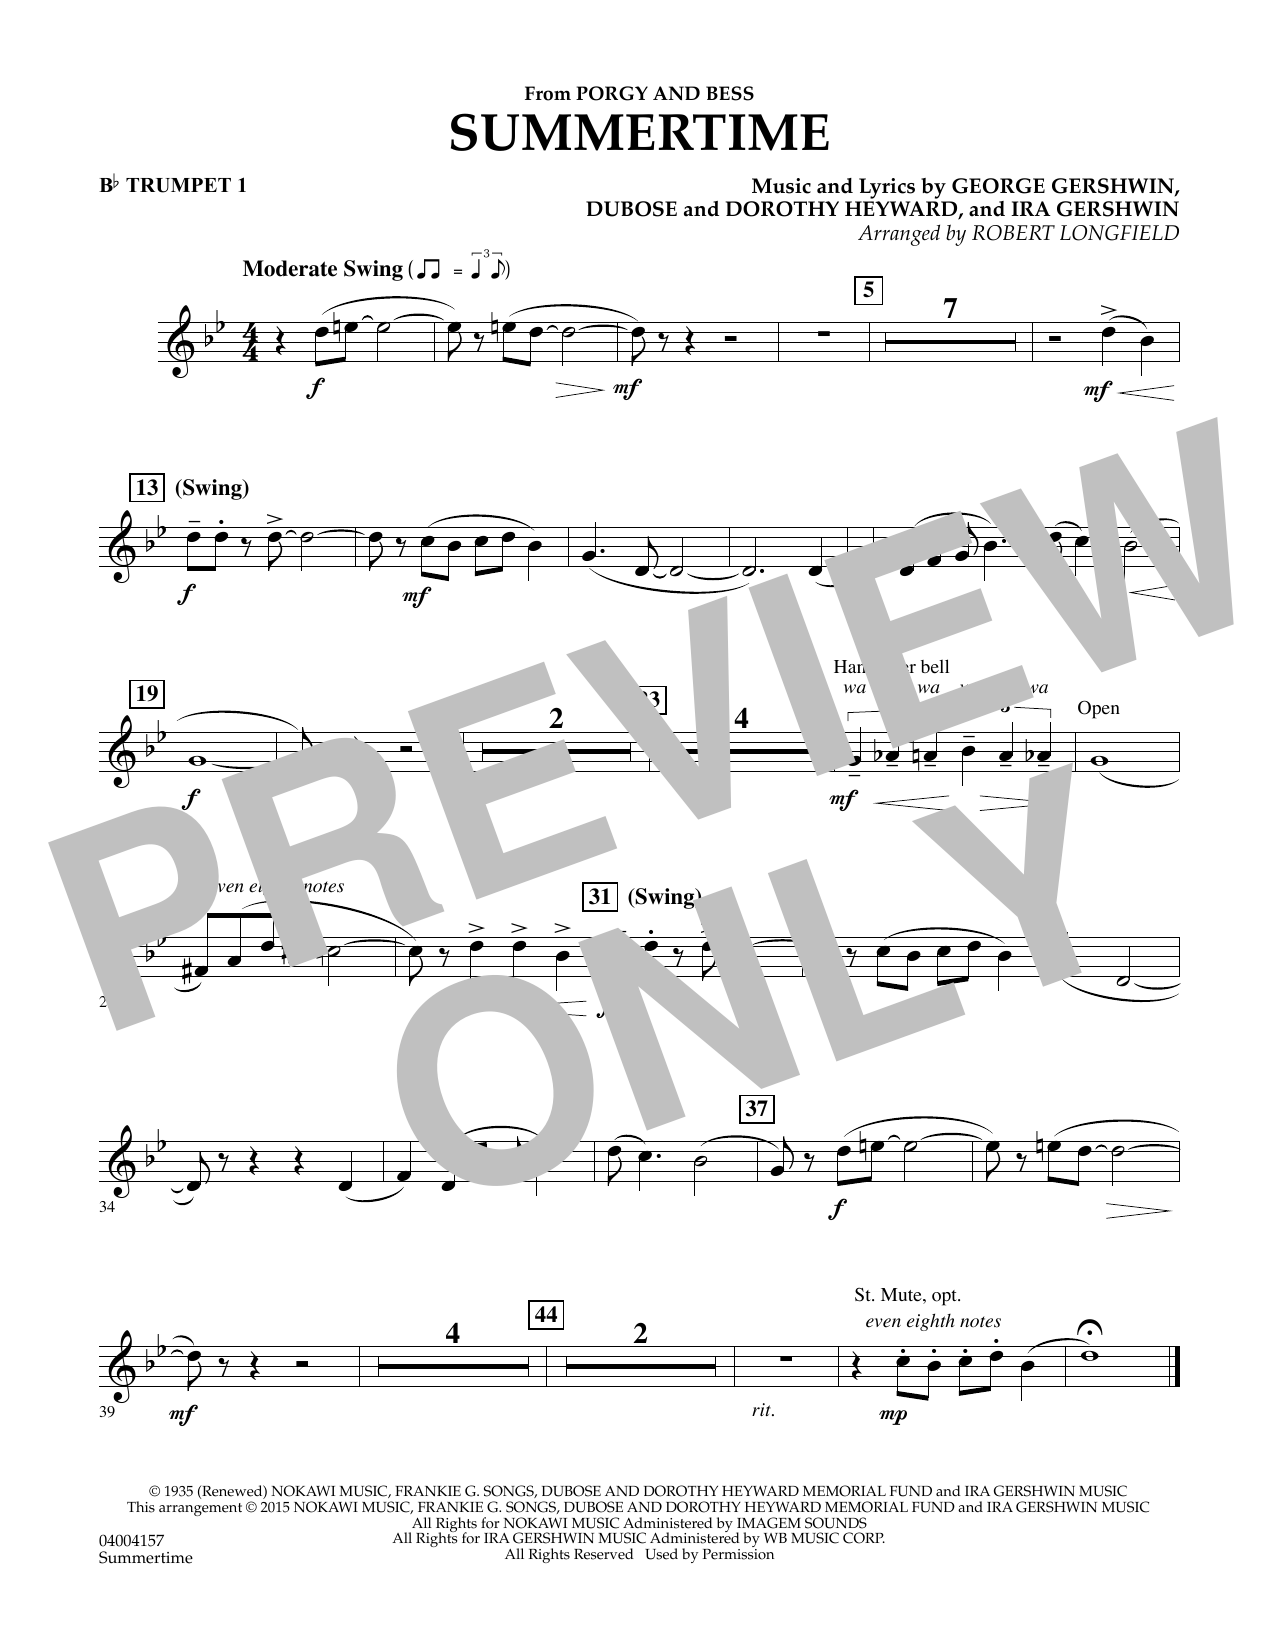 Summertime (from Porgy and Bess) - Bb Trumpet 1 (Concert Band)